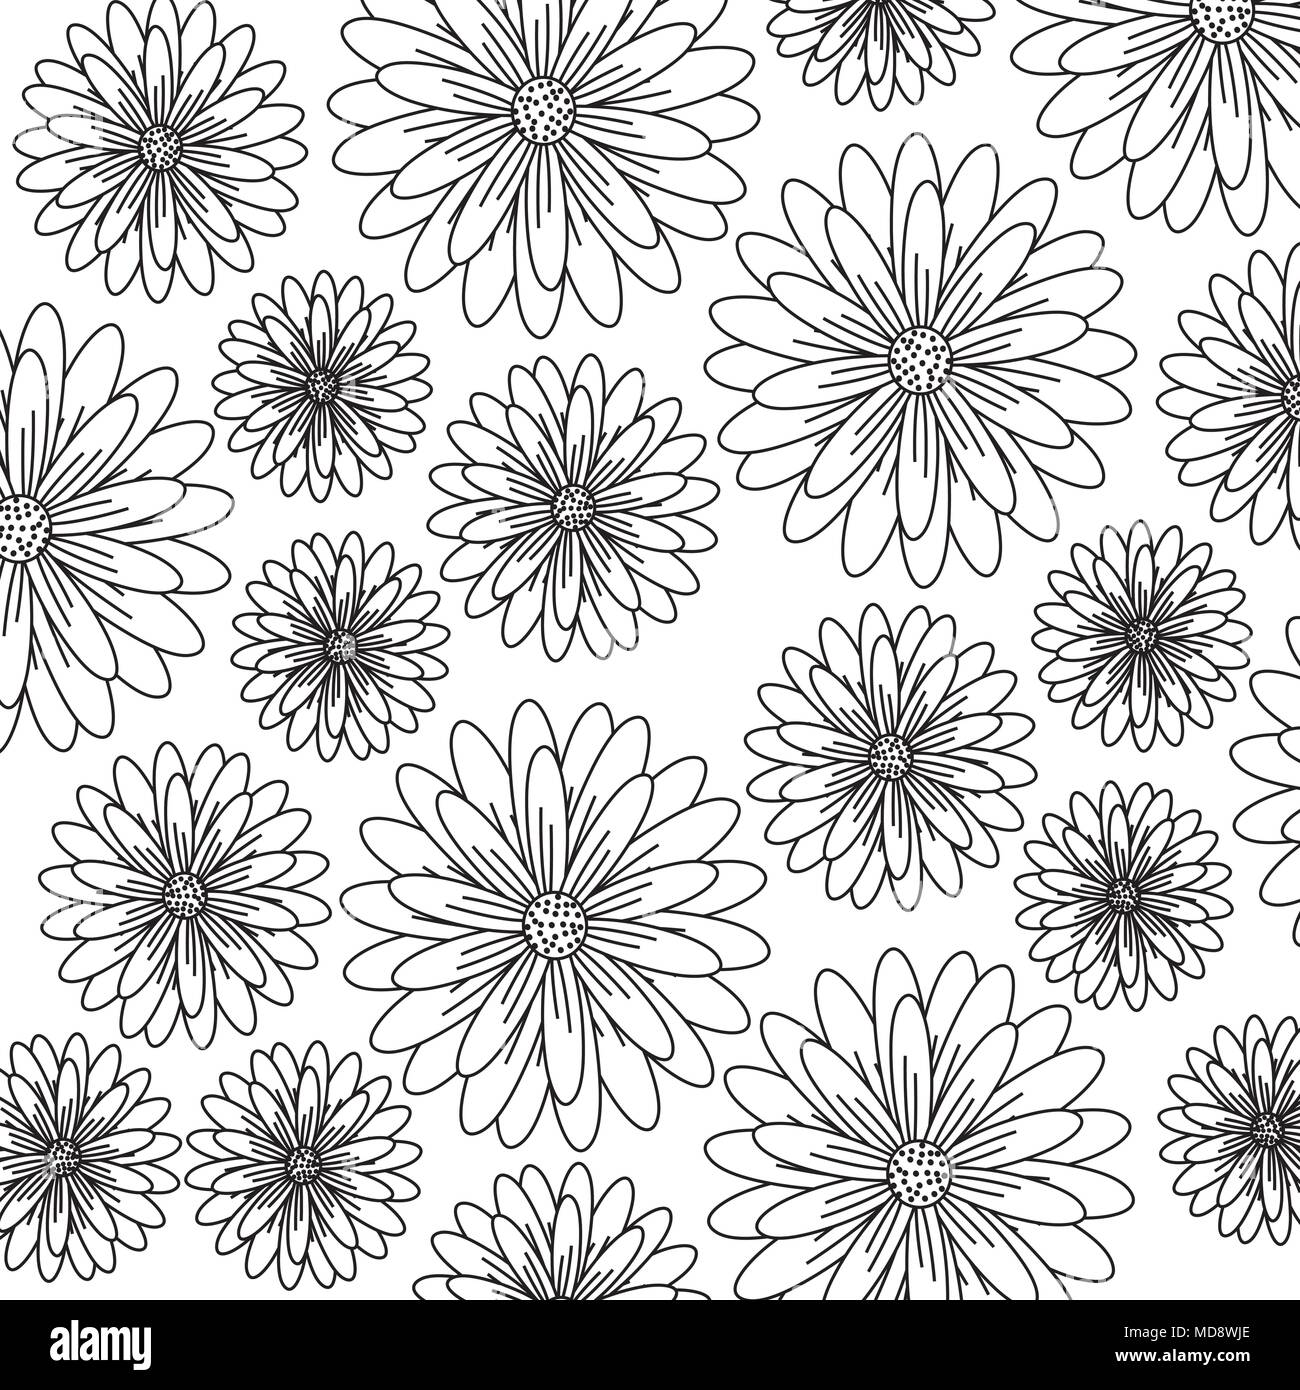 Floral Background Black And White Design Vector Illustration